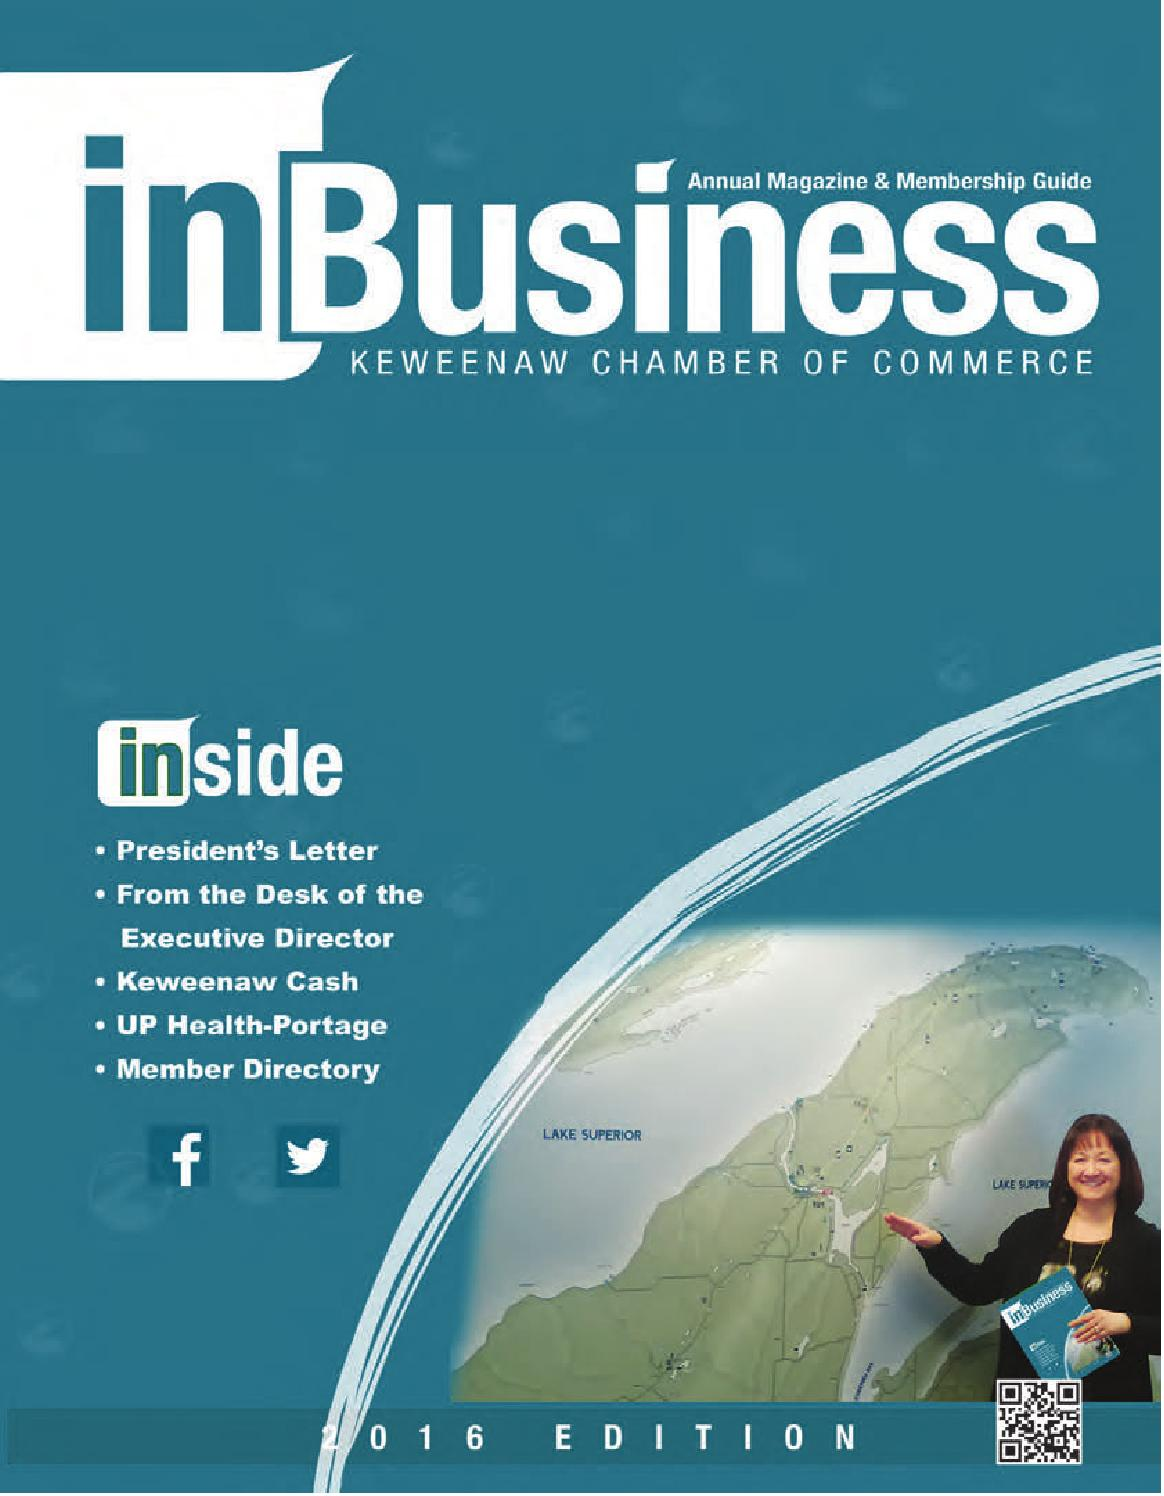 Inbusiness 2016 by keweenaw chamber of commerce issuu fandeluxe Images